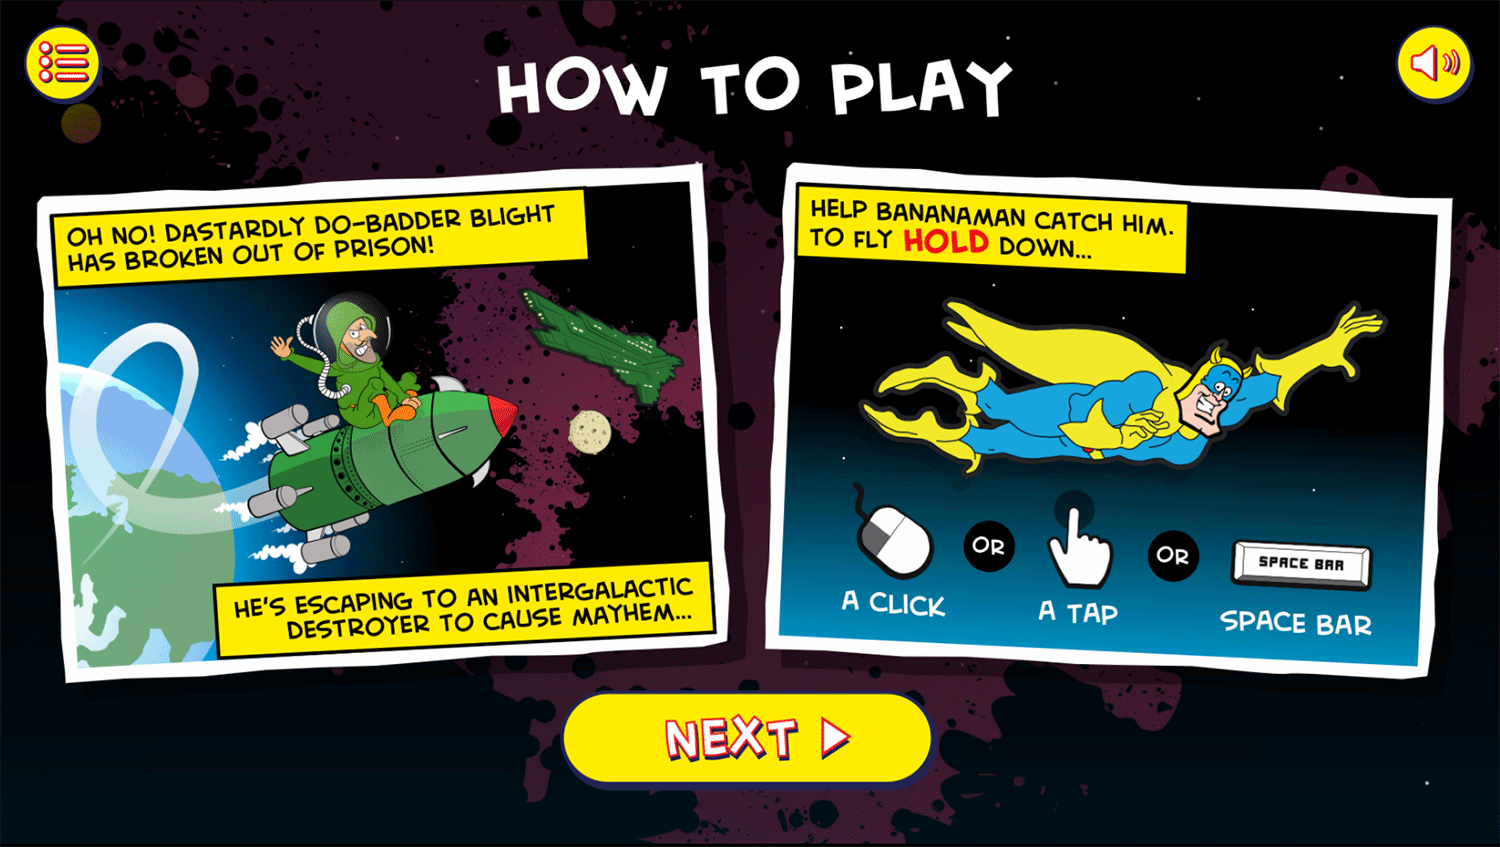 Bananaman Chase in Space Game How To Play Screenshot.